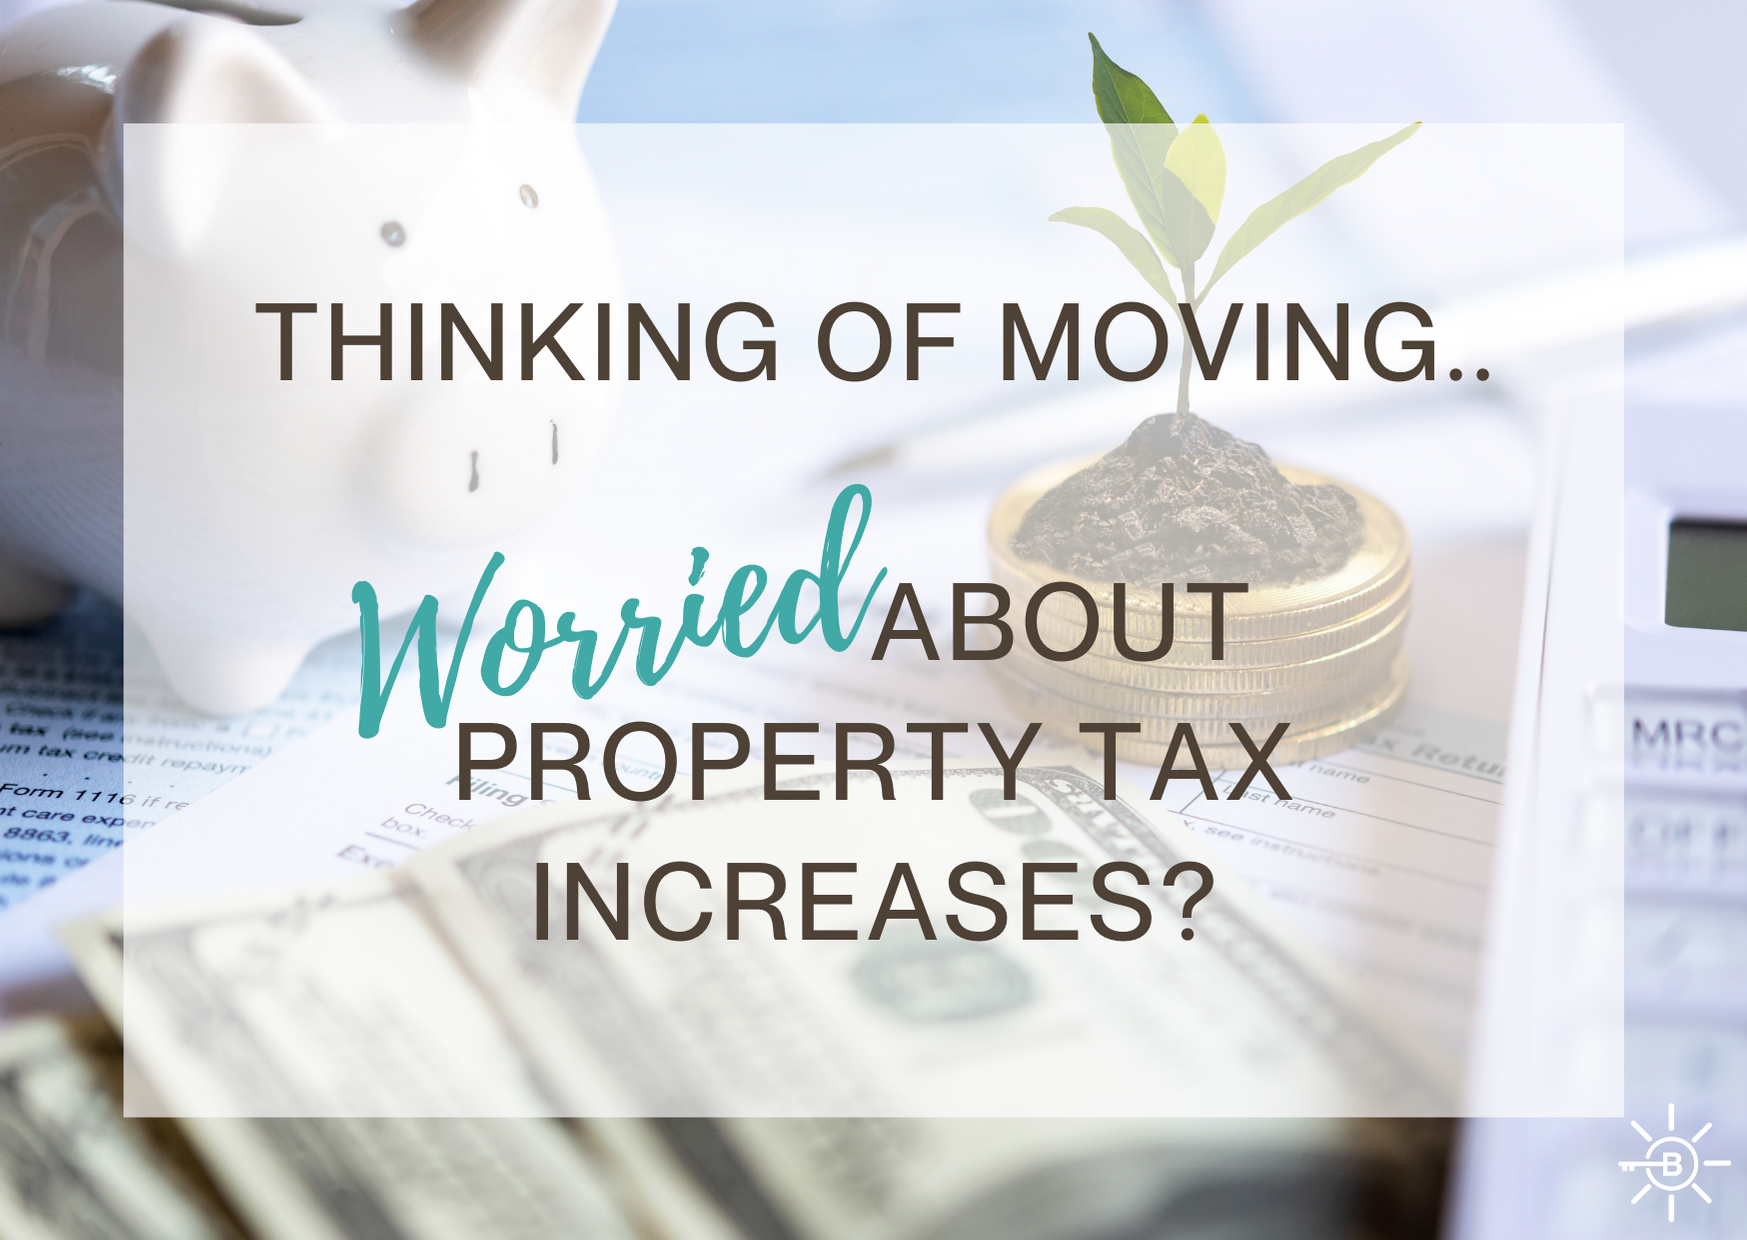 Thinking of Moving... Worried About Property Tax Increases?